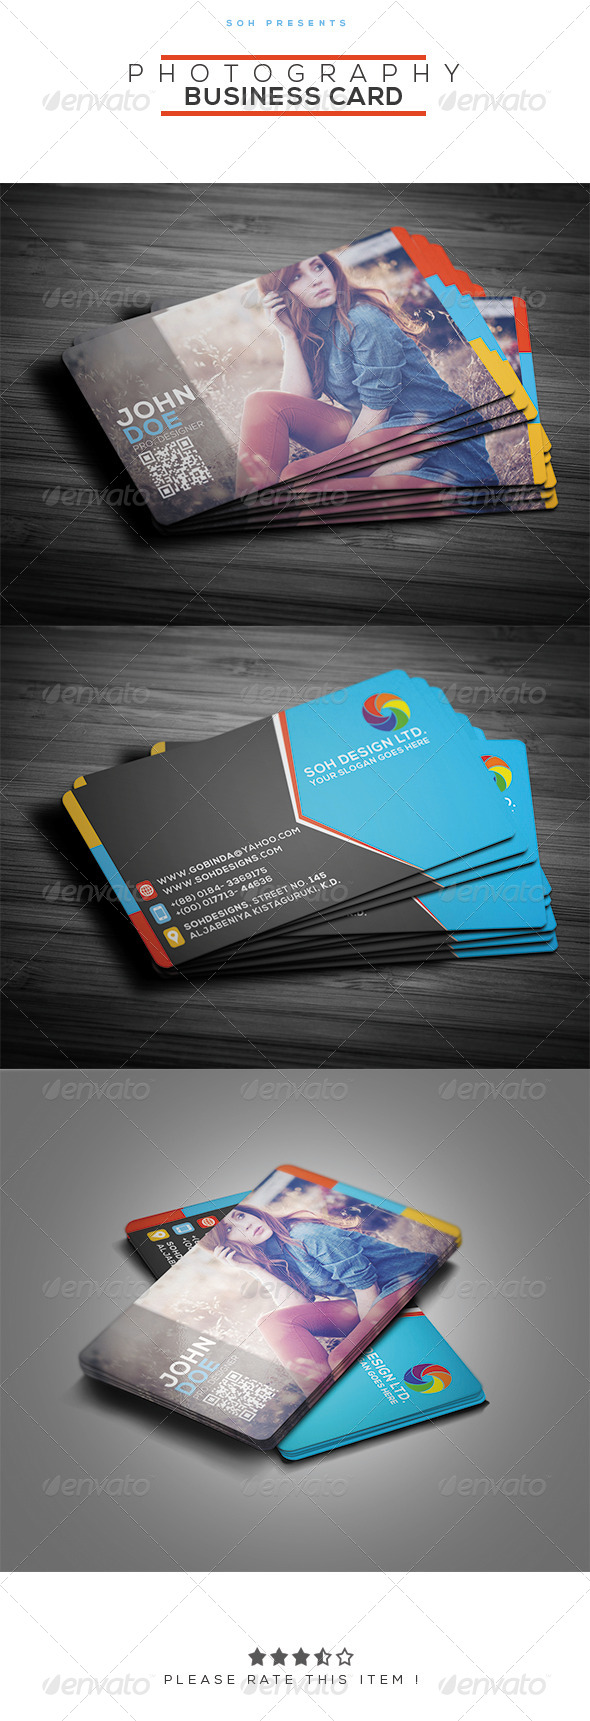 Industry specific business card templates from graphicriver page 9 reheart Images